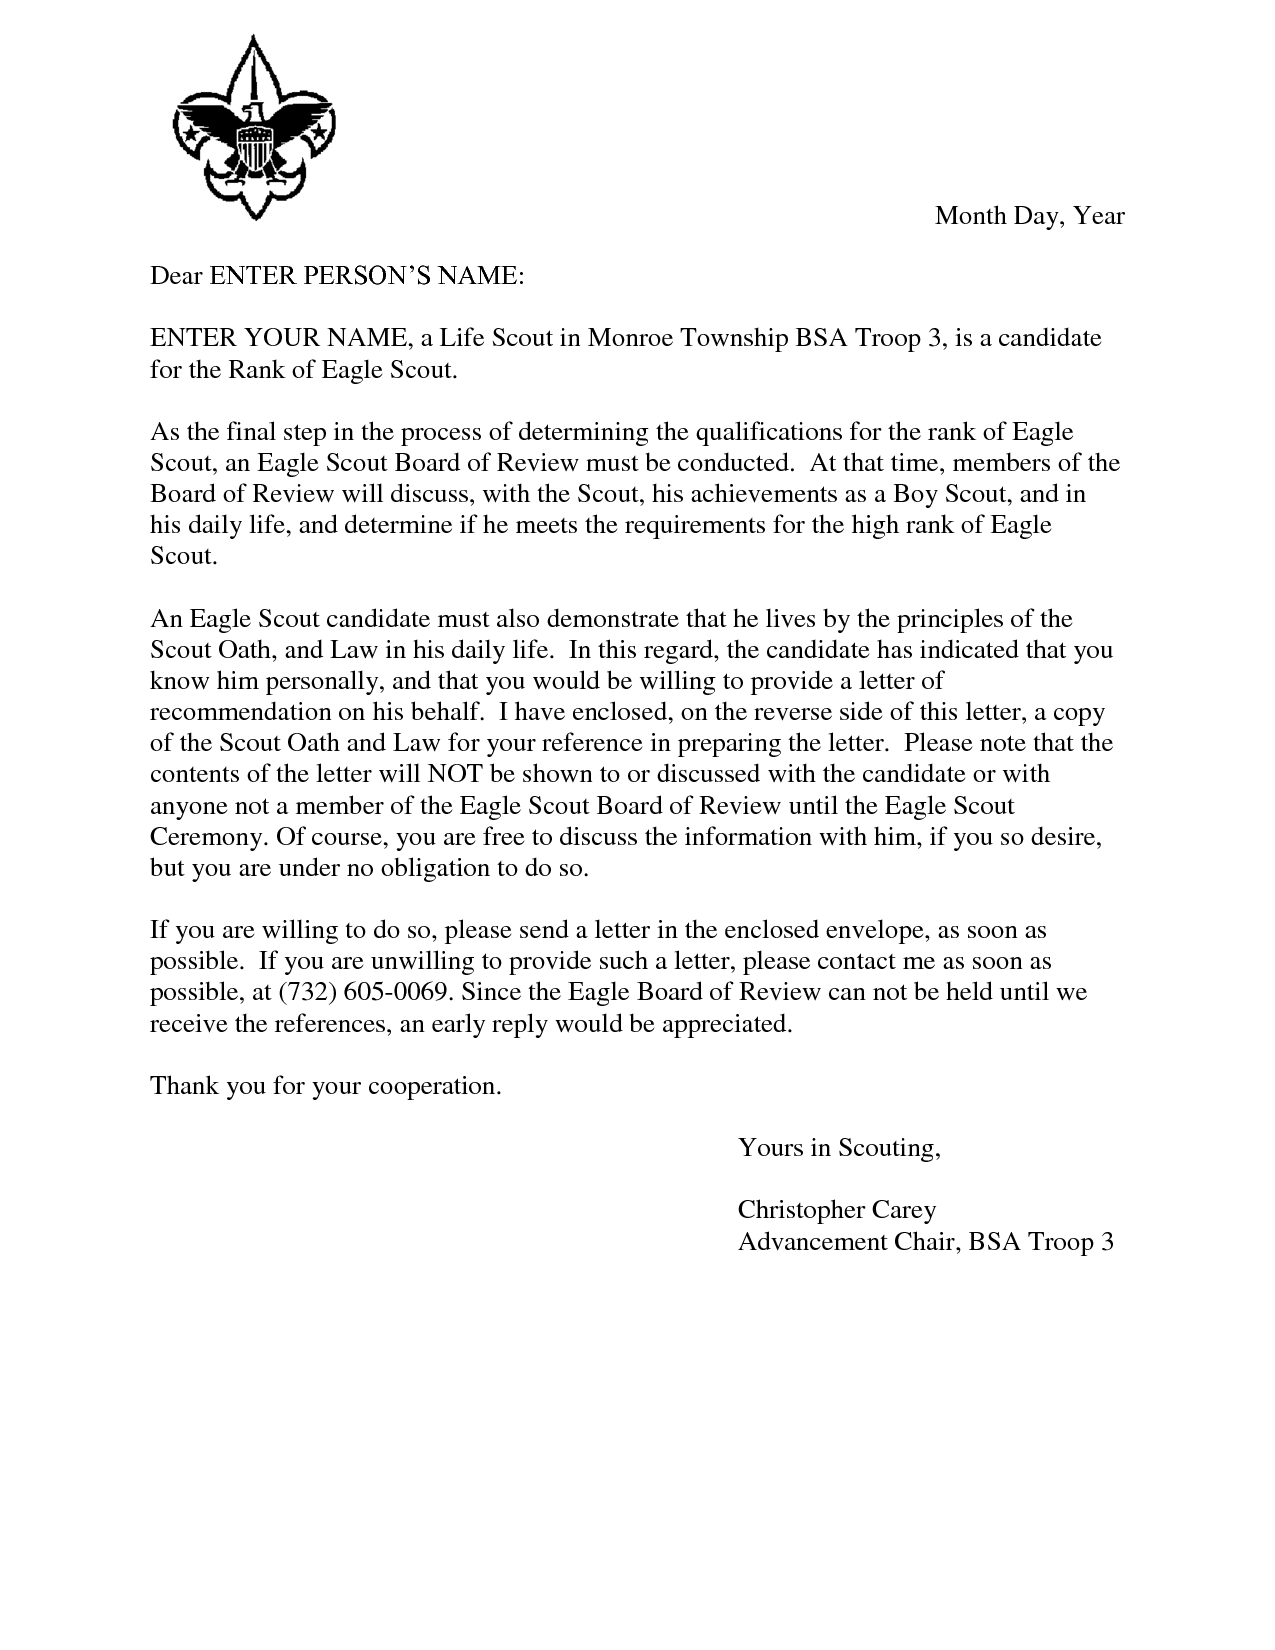 eagle scout reference request sample letter doc 7 by hfr990q tgqfagp7